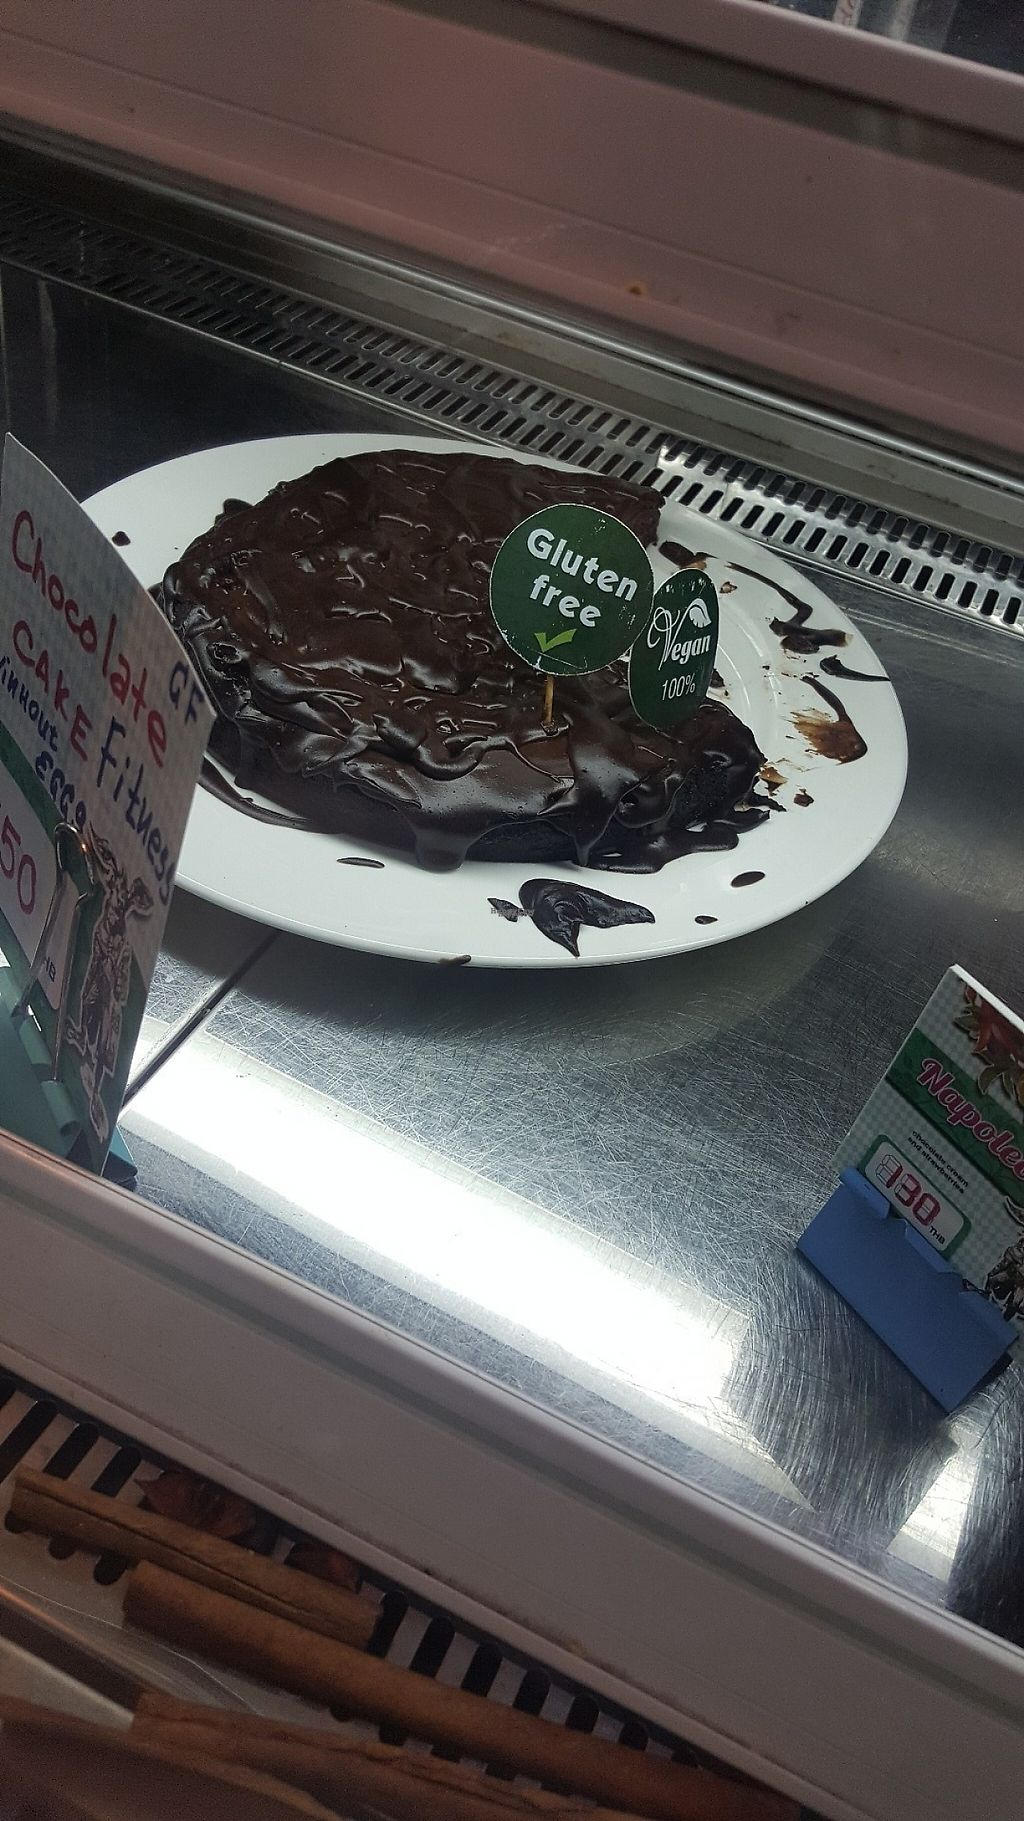 """Photo of Tidbit Bakery  by <a href=""""/members/profile/lene86"""">lene86</a> <br/>Vegan chocolate cake <br/> March 23, 2017  - <a href='/contact/abuse/image/89085/239656'>Report</a>"""